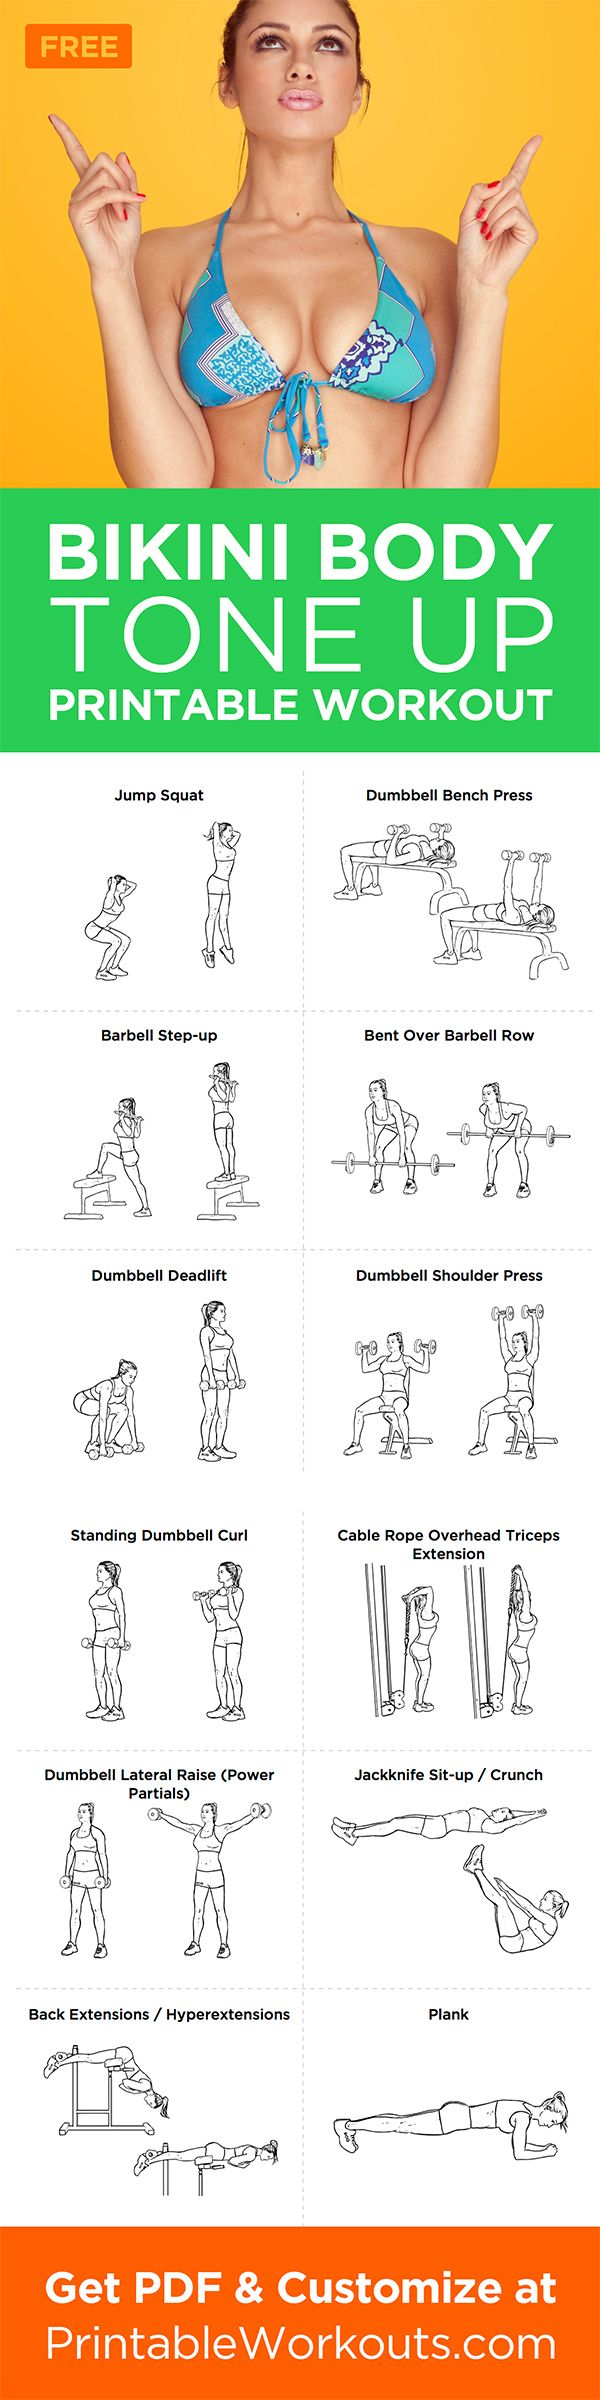 This workout is going to focus on all those trouble spots effectively.